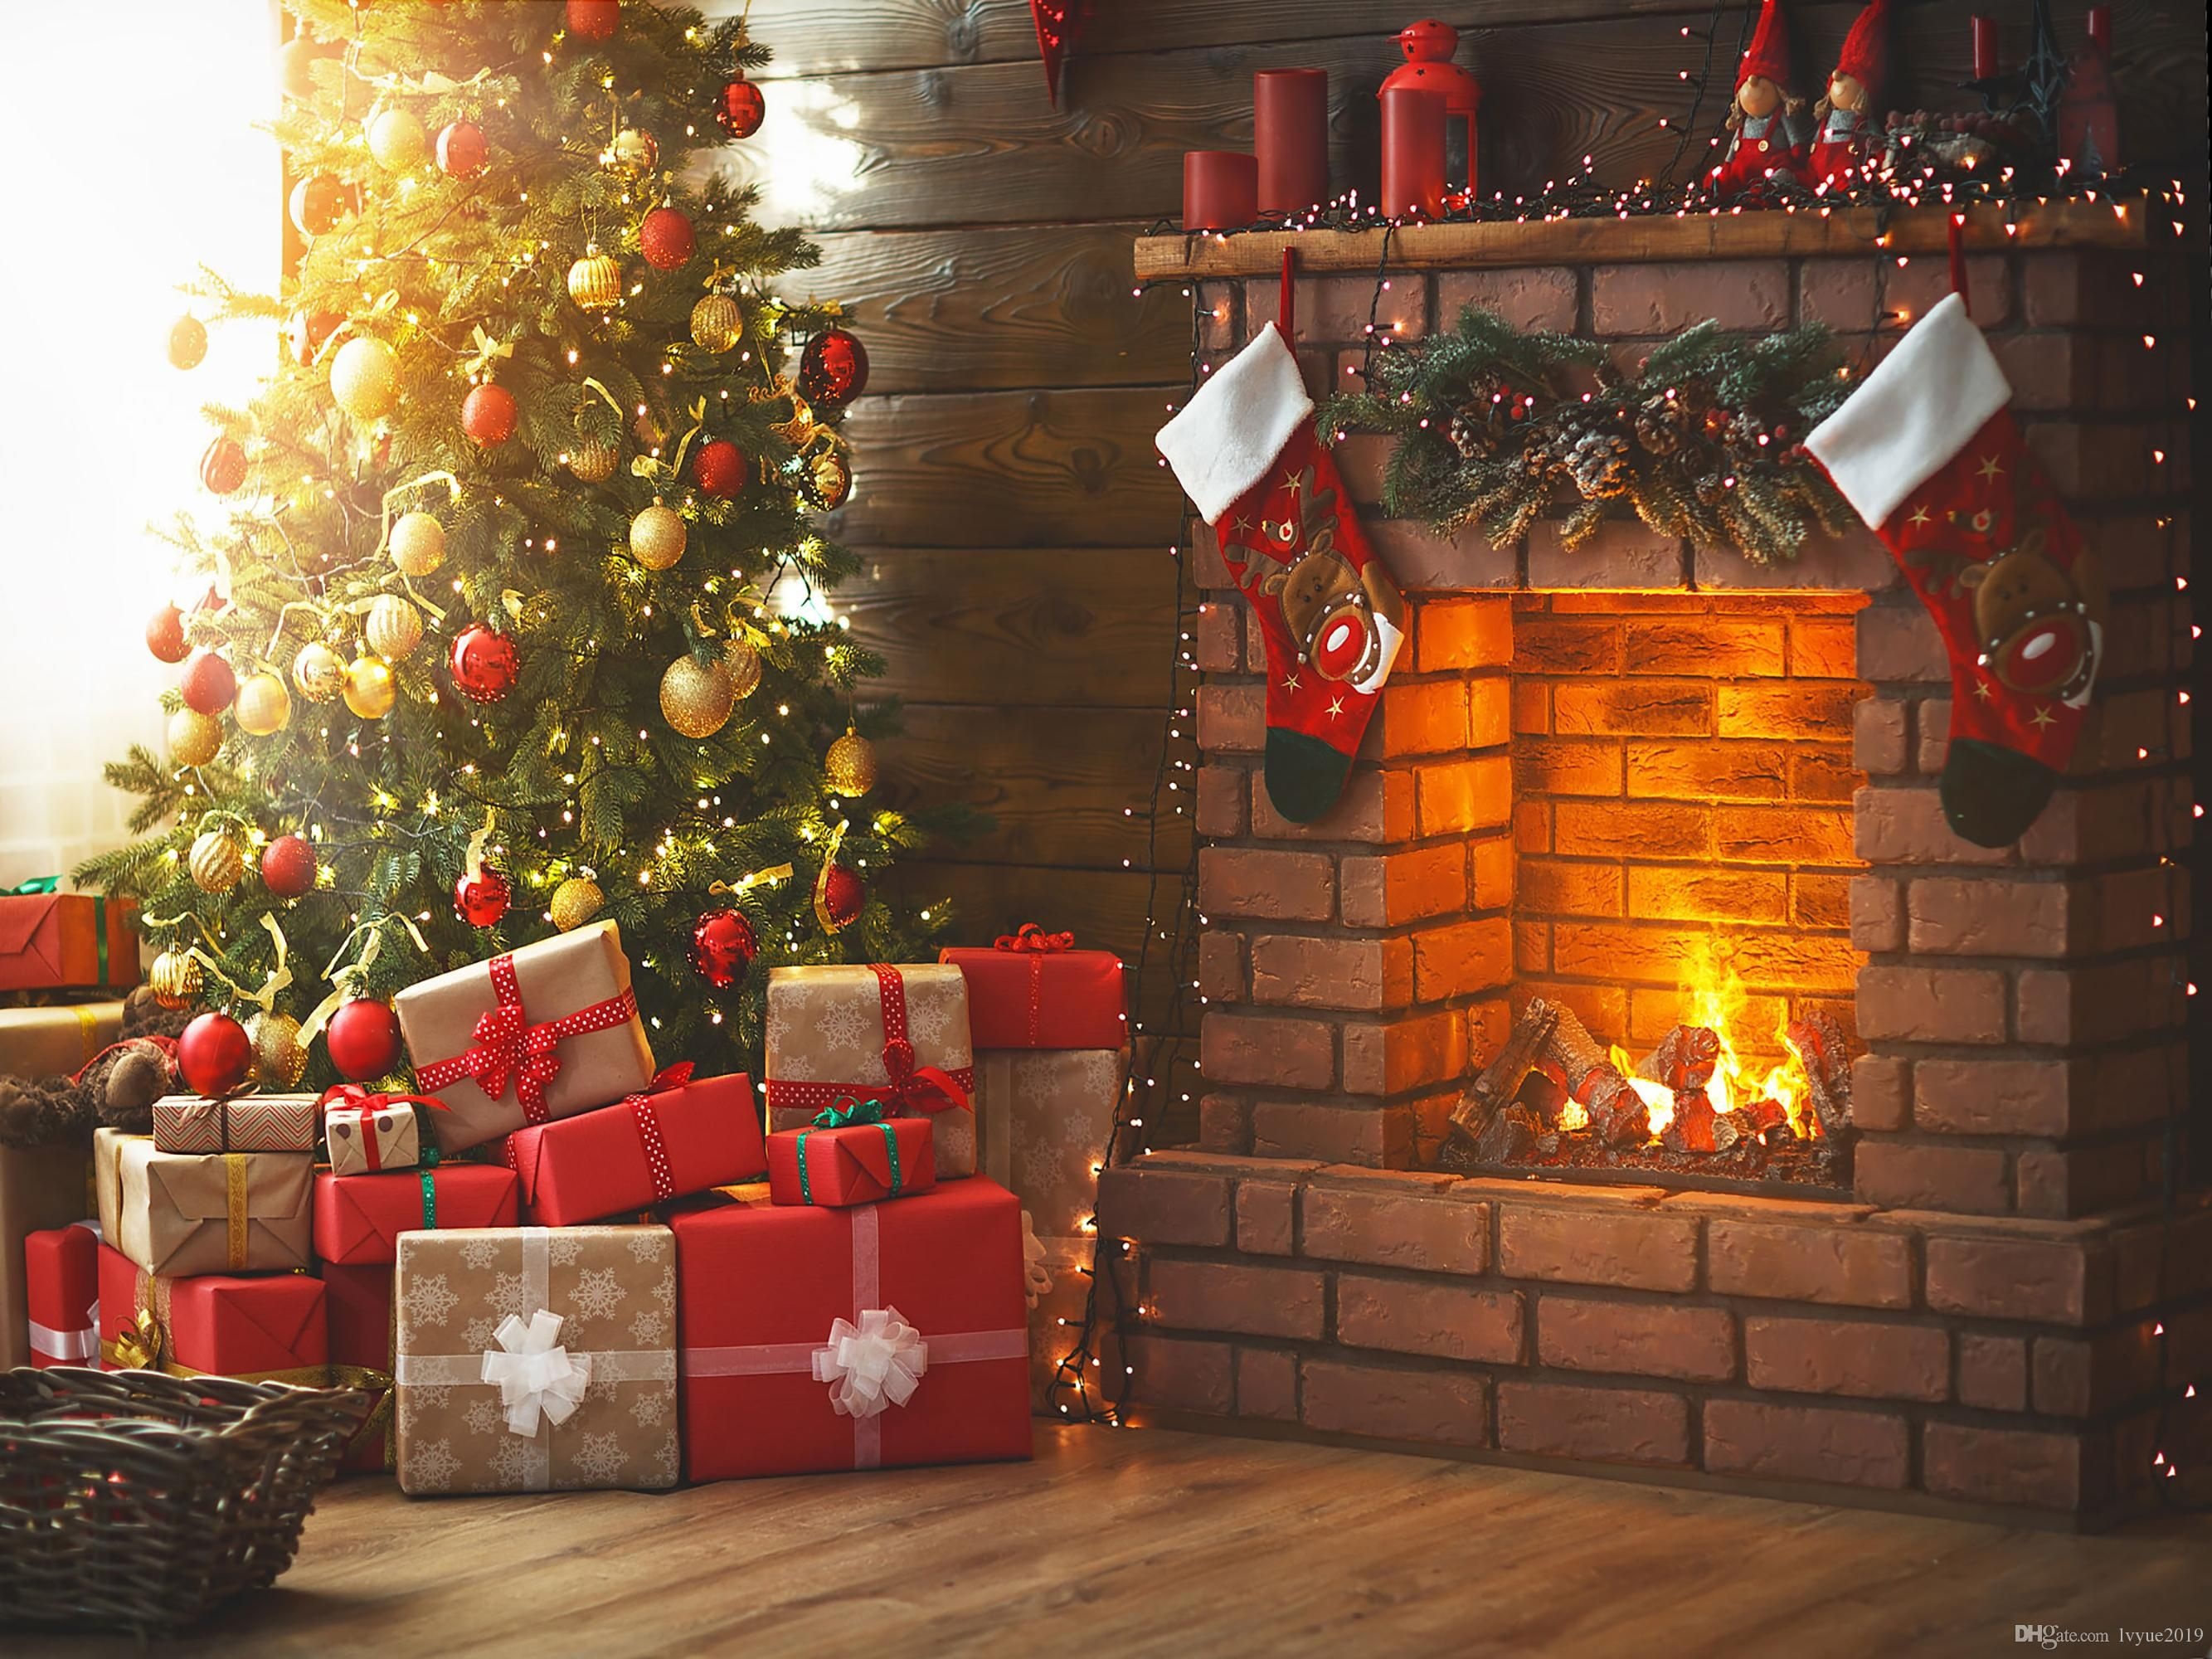 2021 Interior Christmas Tree Fireplace Gifts Vinyl Photography Backdrops Christmas Socks Photo Booth Backgrounds For Family Holidays Studio Pr From Lvyue2019 Christmas Photography Backdrops Christmas Tree And Fireplace Photo Backdrop Christmas Holiday living room background